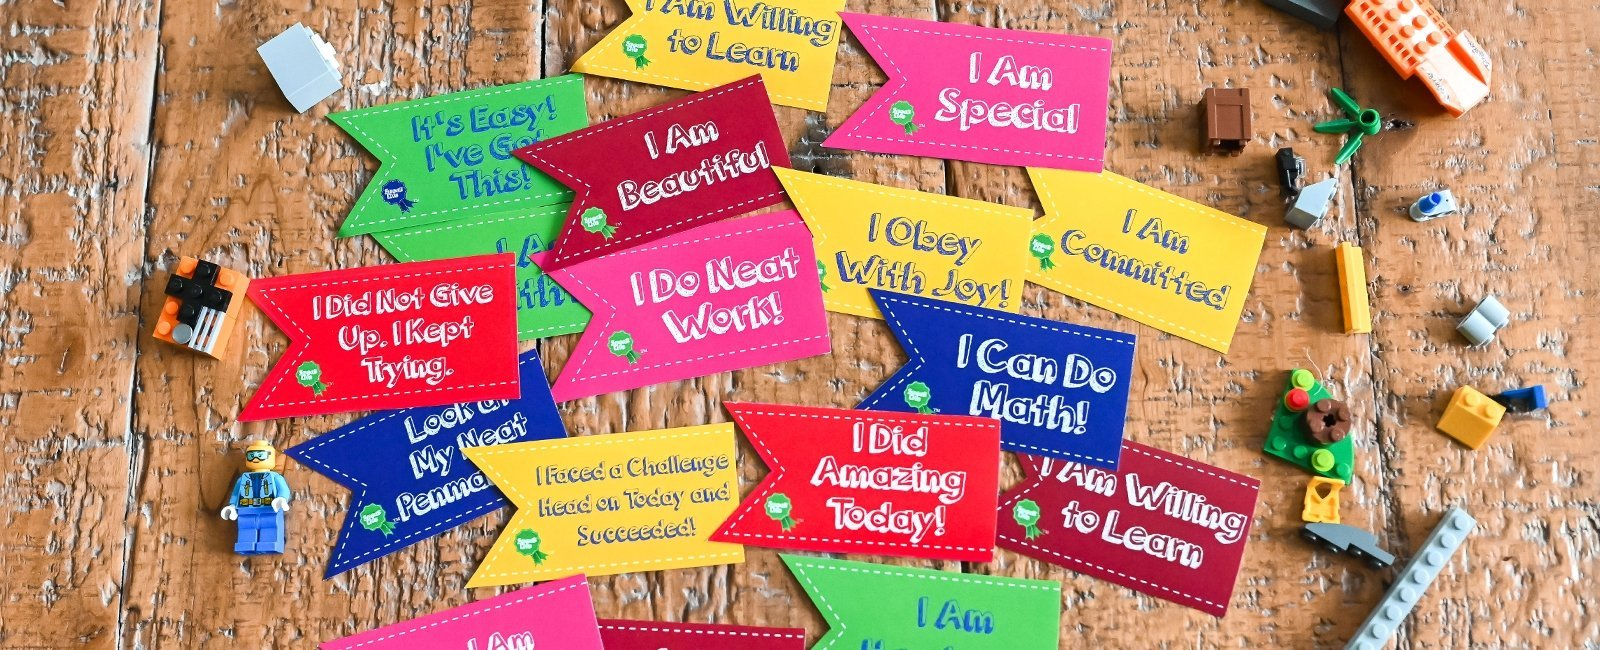 Lots of Speak Life Badges stickers on wood with lego